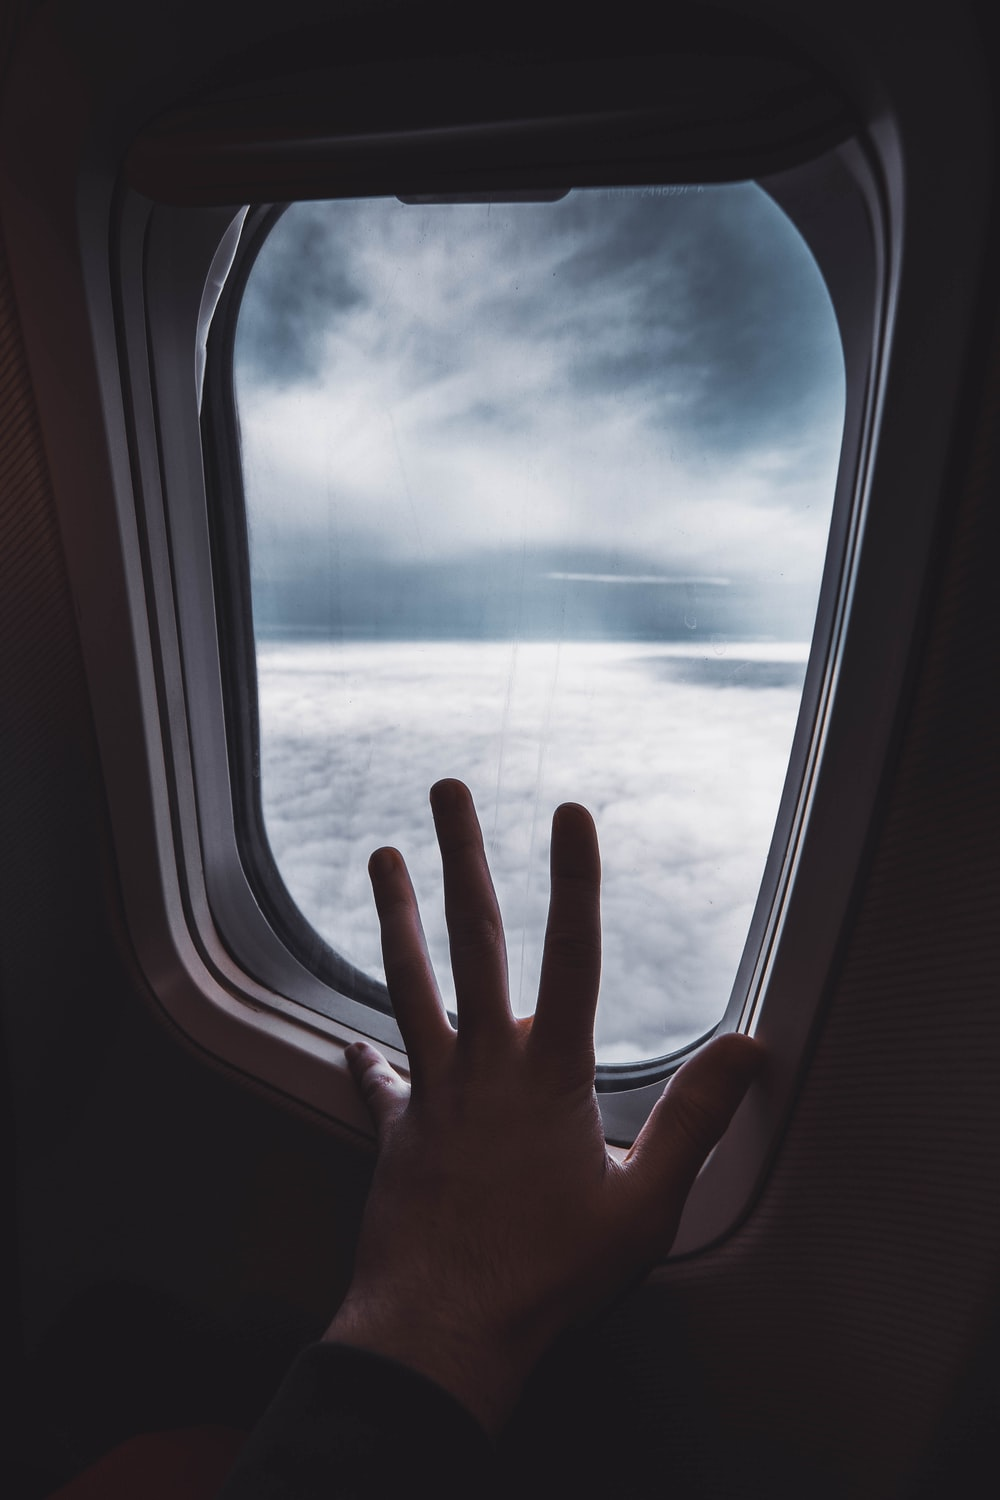 person holding airplane window